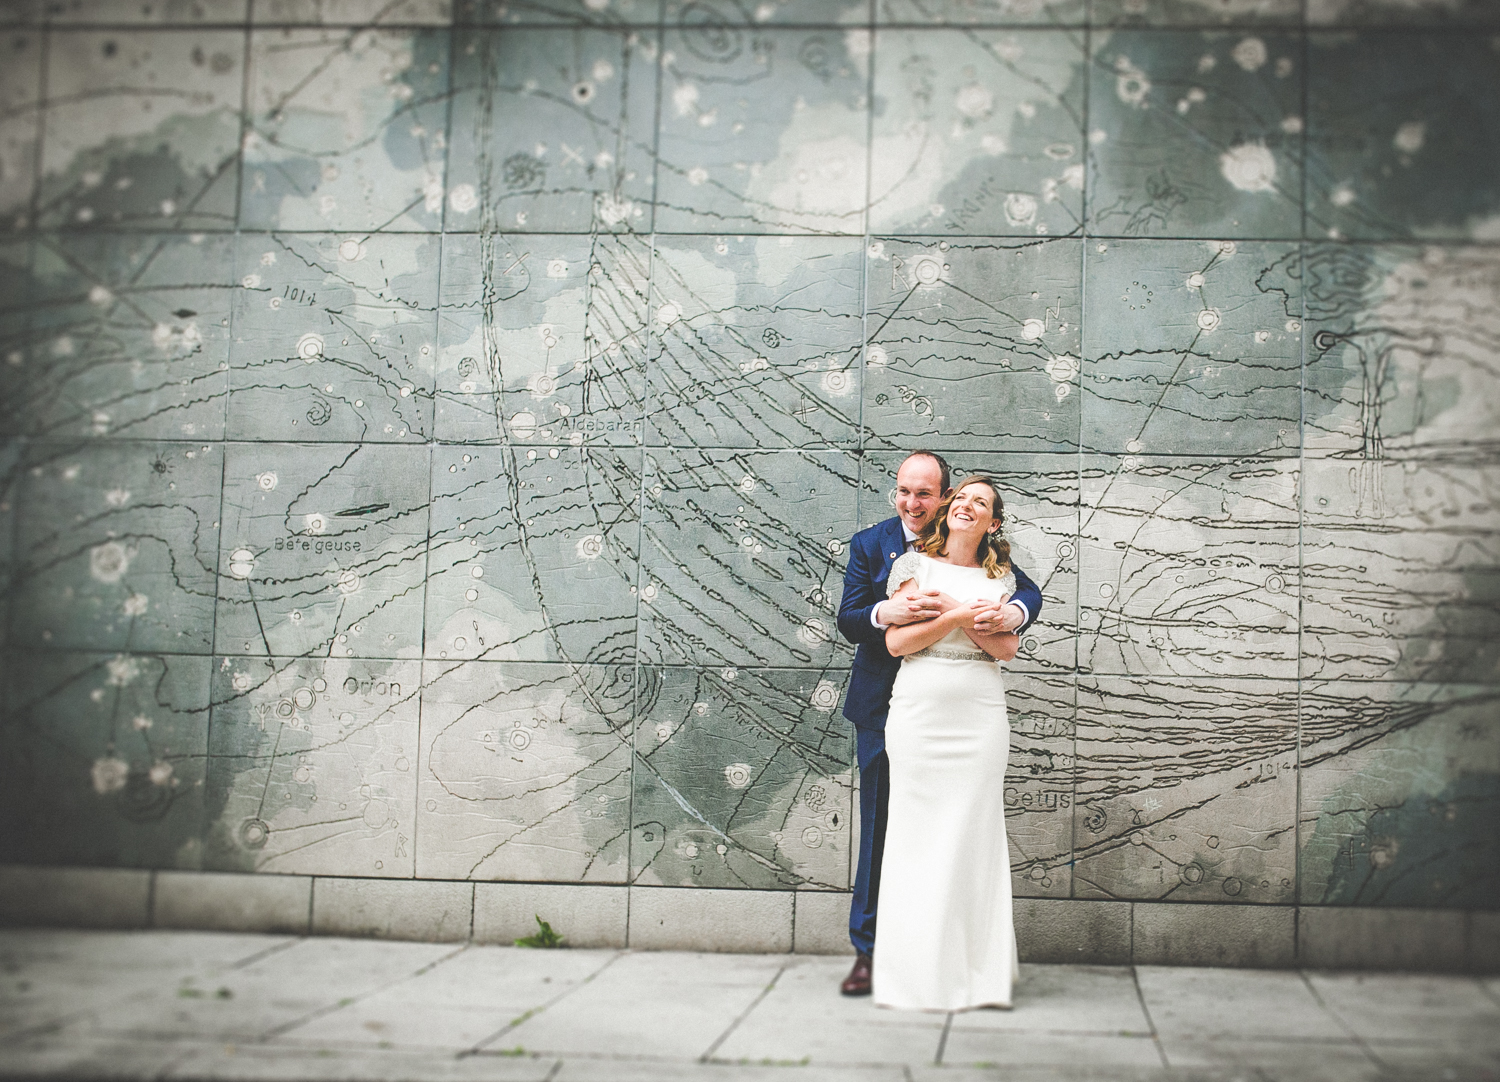 Wedding photography at City Hall-19.jpg